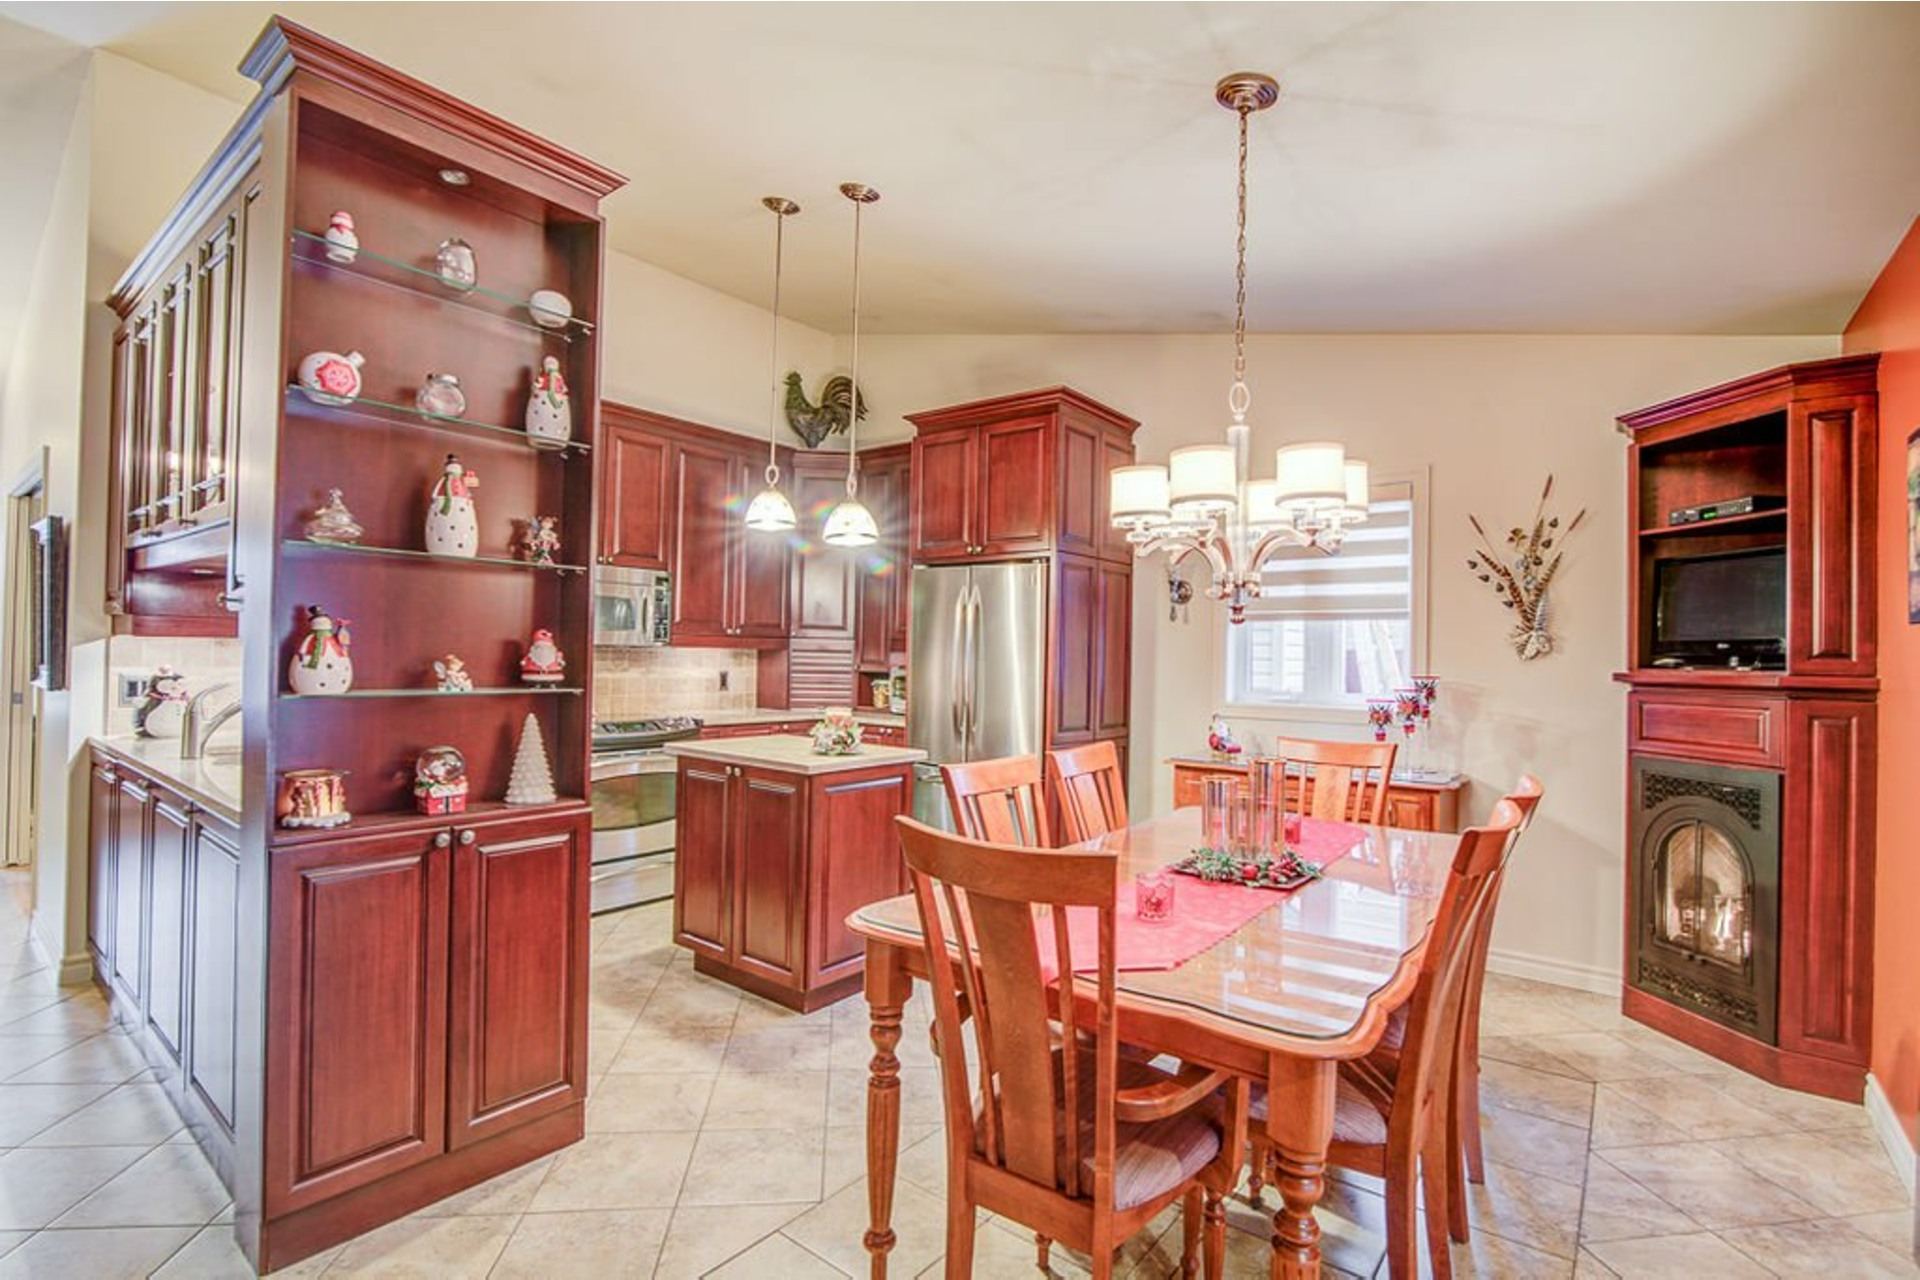 image 5 - House For sale Blainville - 14 rooms